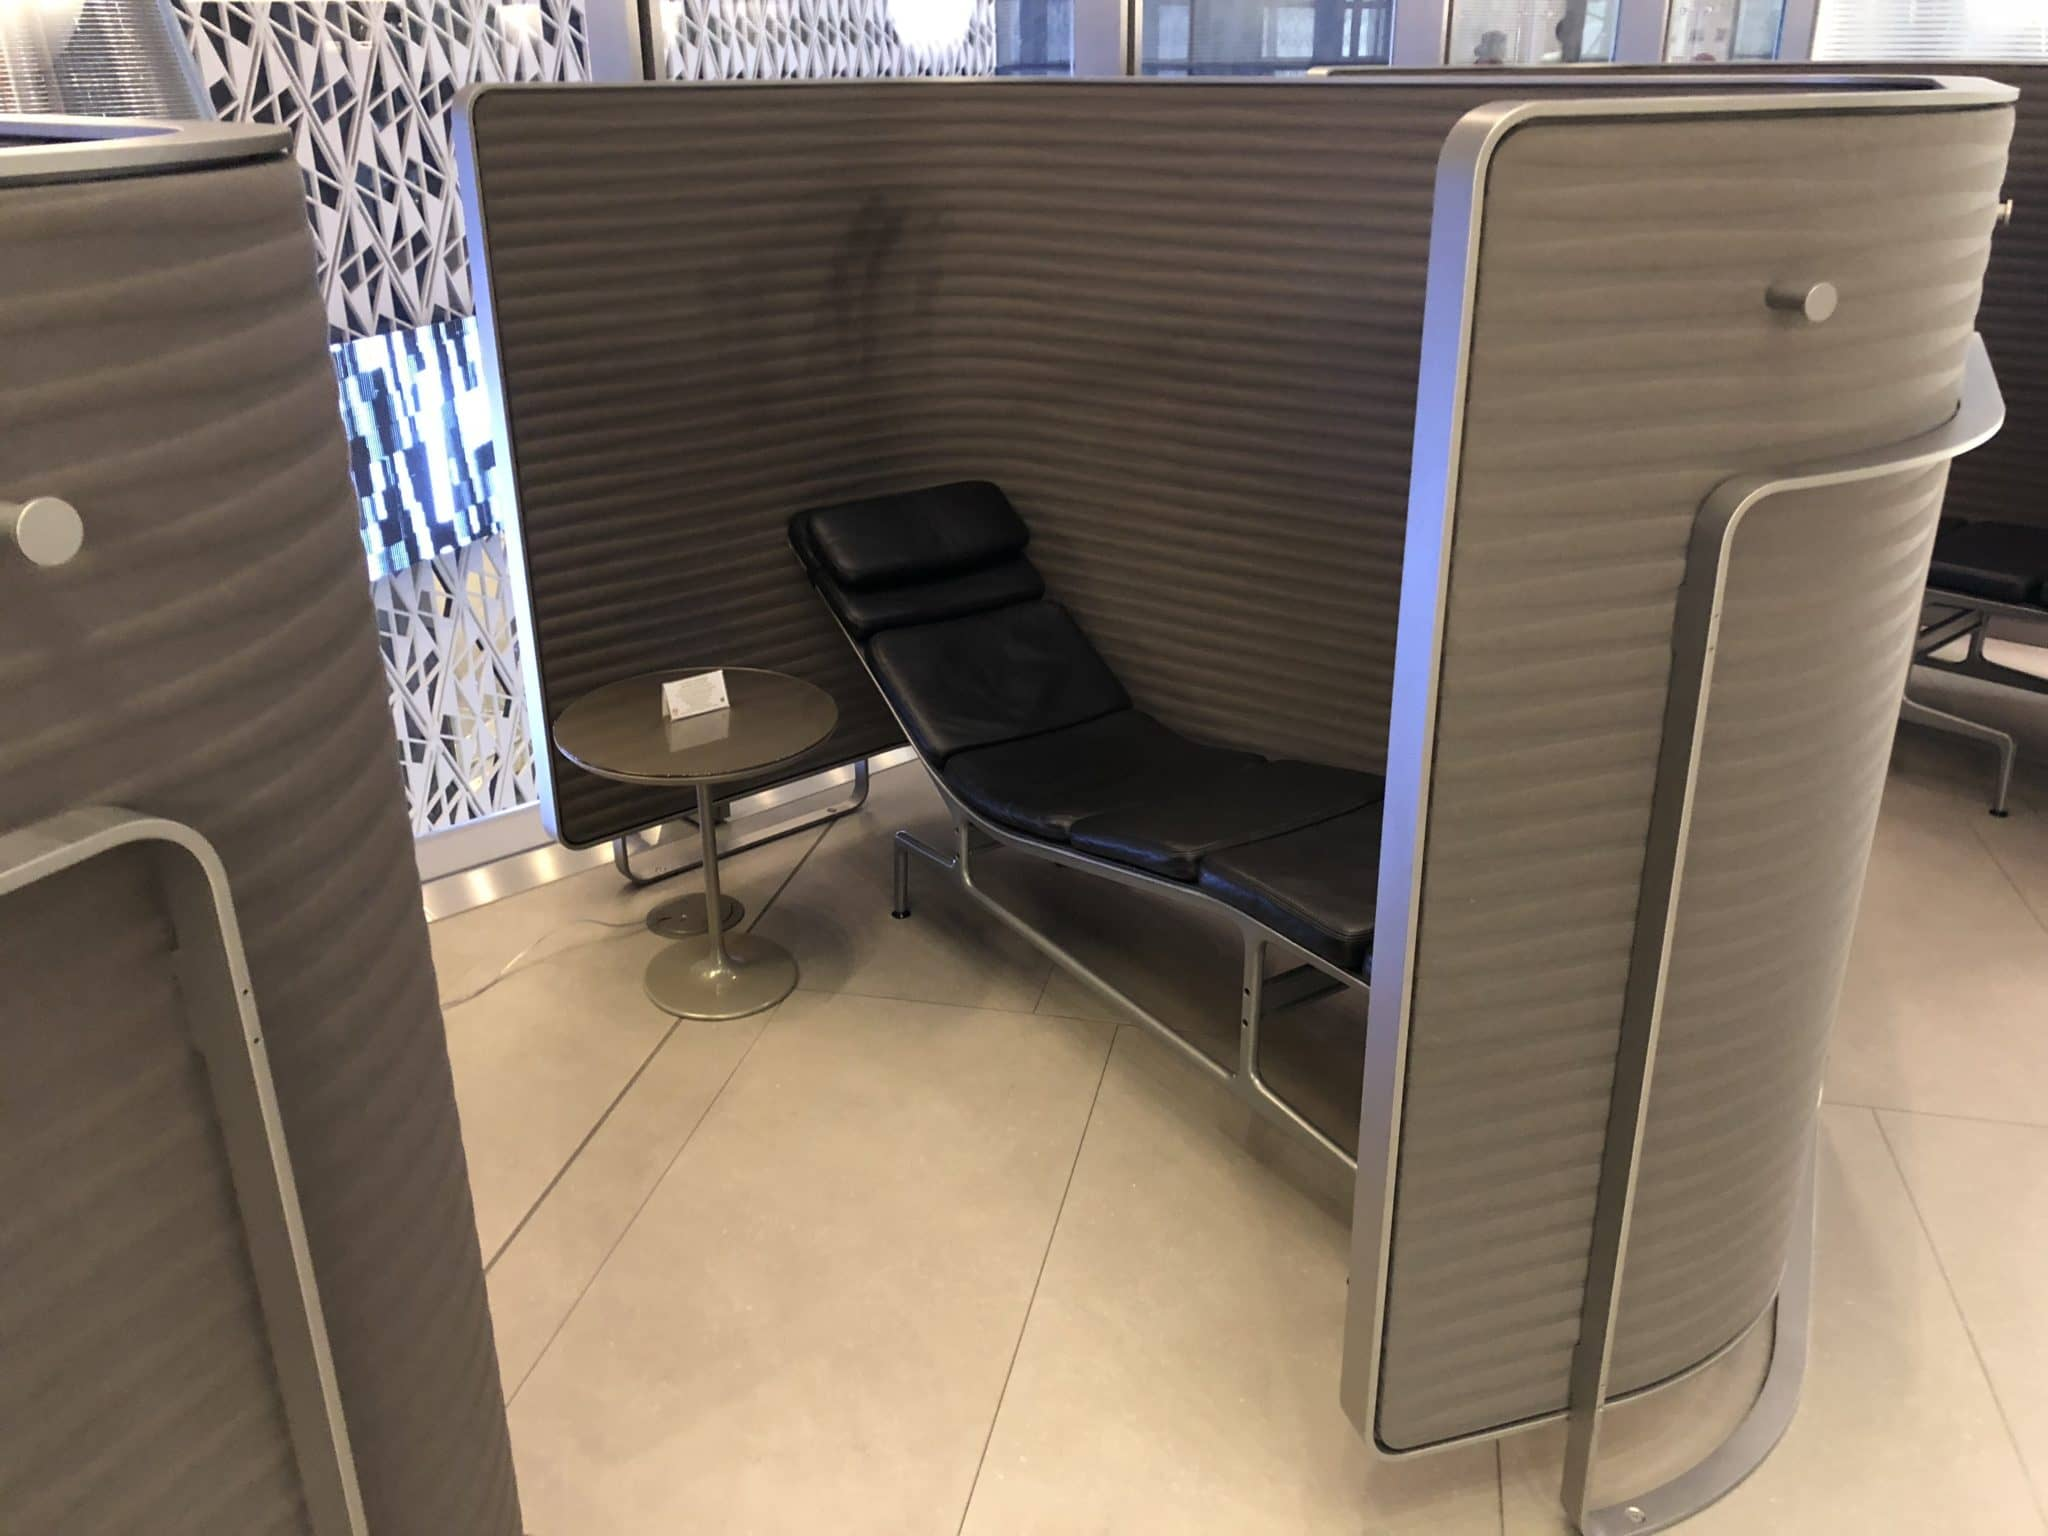 Qatar Airways Al Mourjan Business Class Lounge Einzelkabine mit Liege